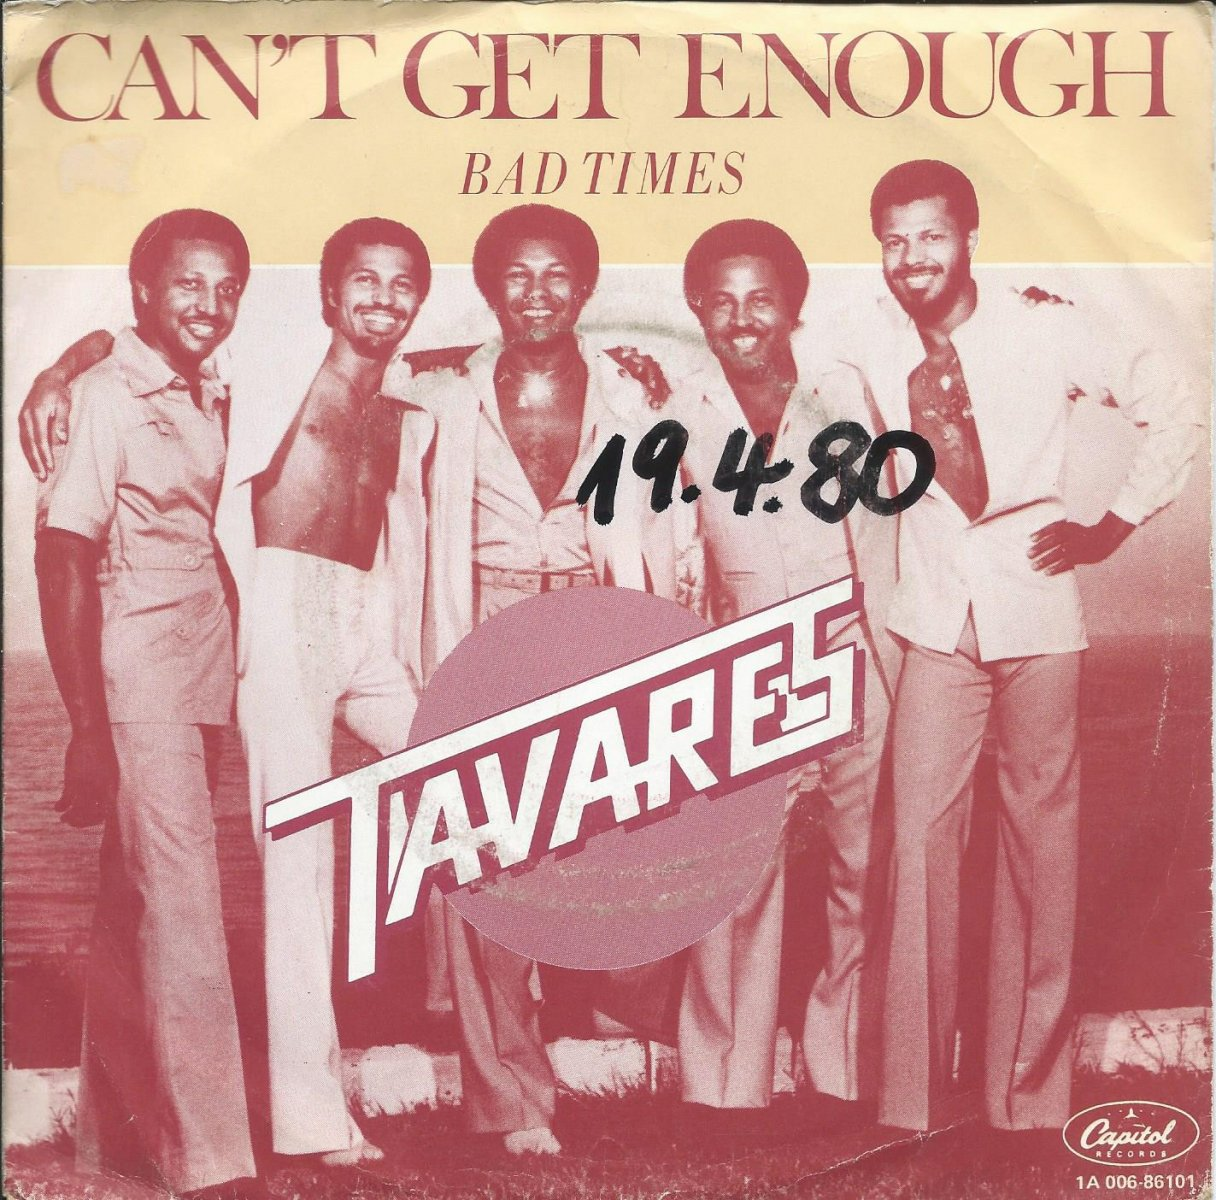 TAVARES / BAD TIMES / CAN'T GET ENOUGH (7